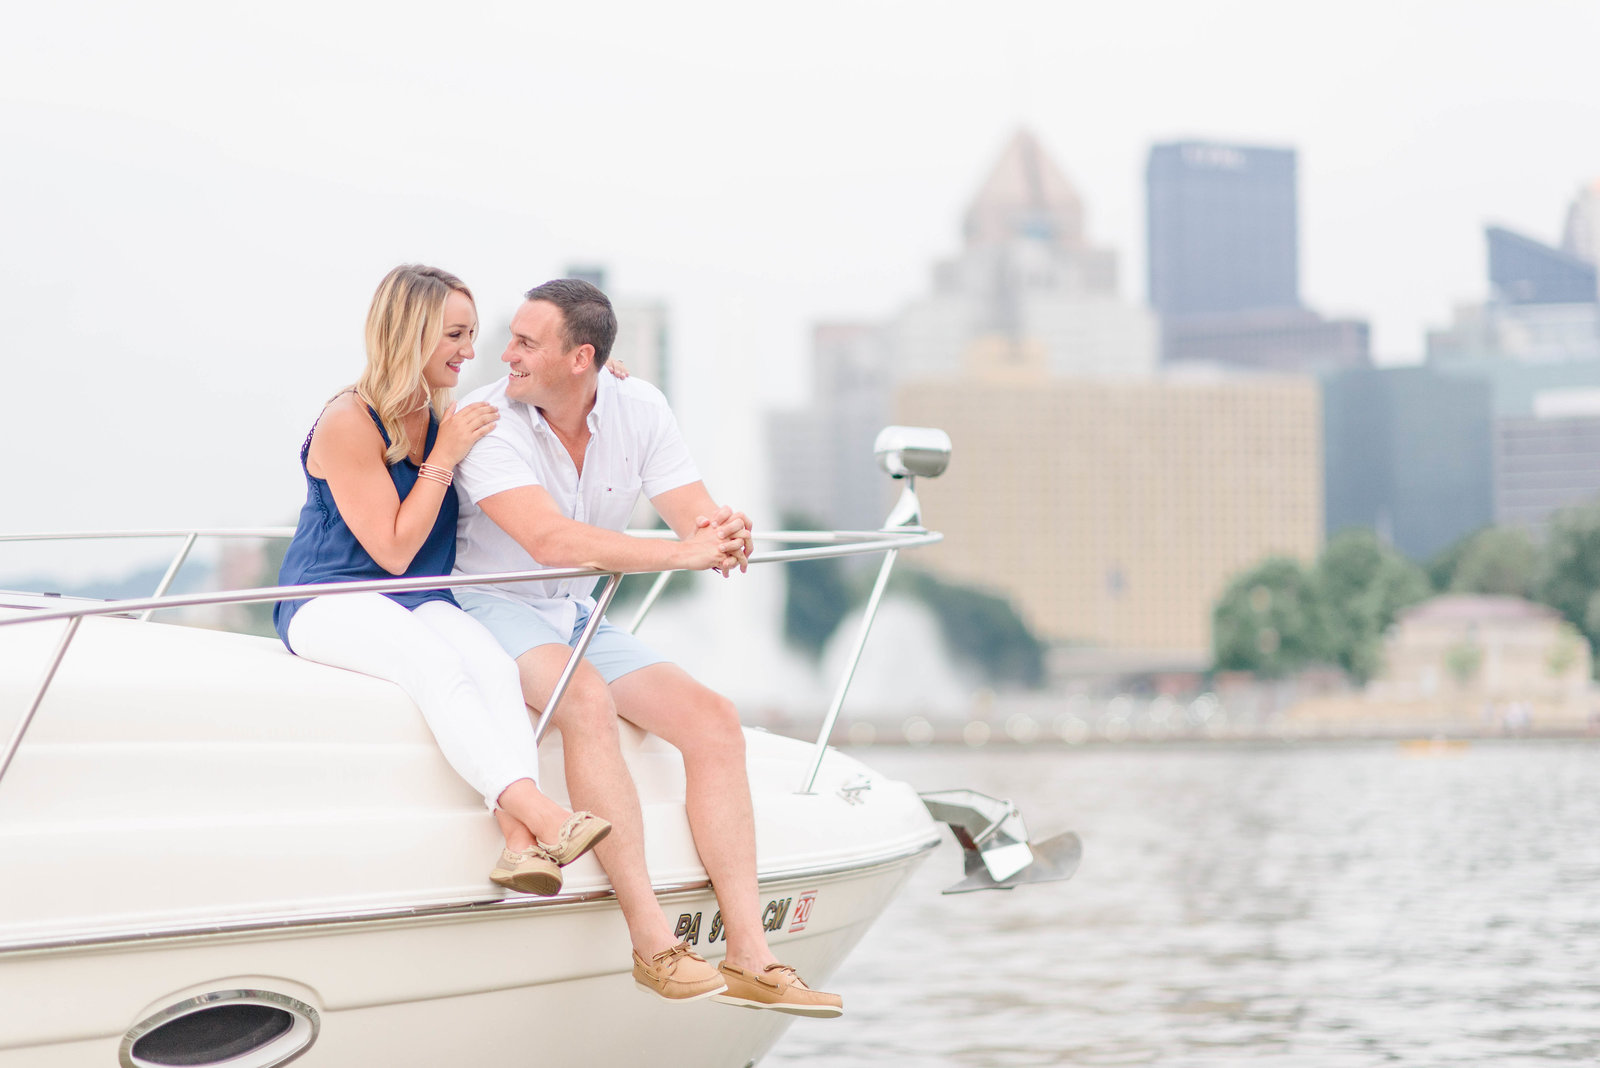 becca-ryan-pittsburgh-boat-engagement-photos-77